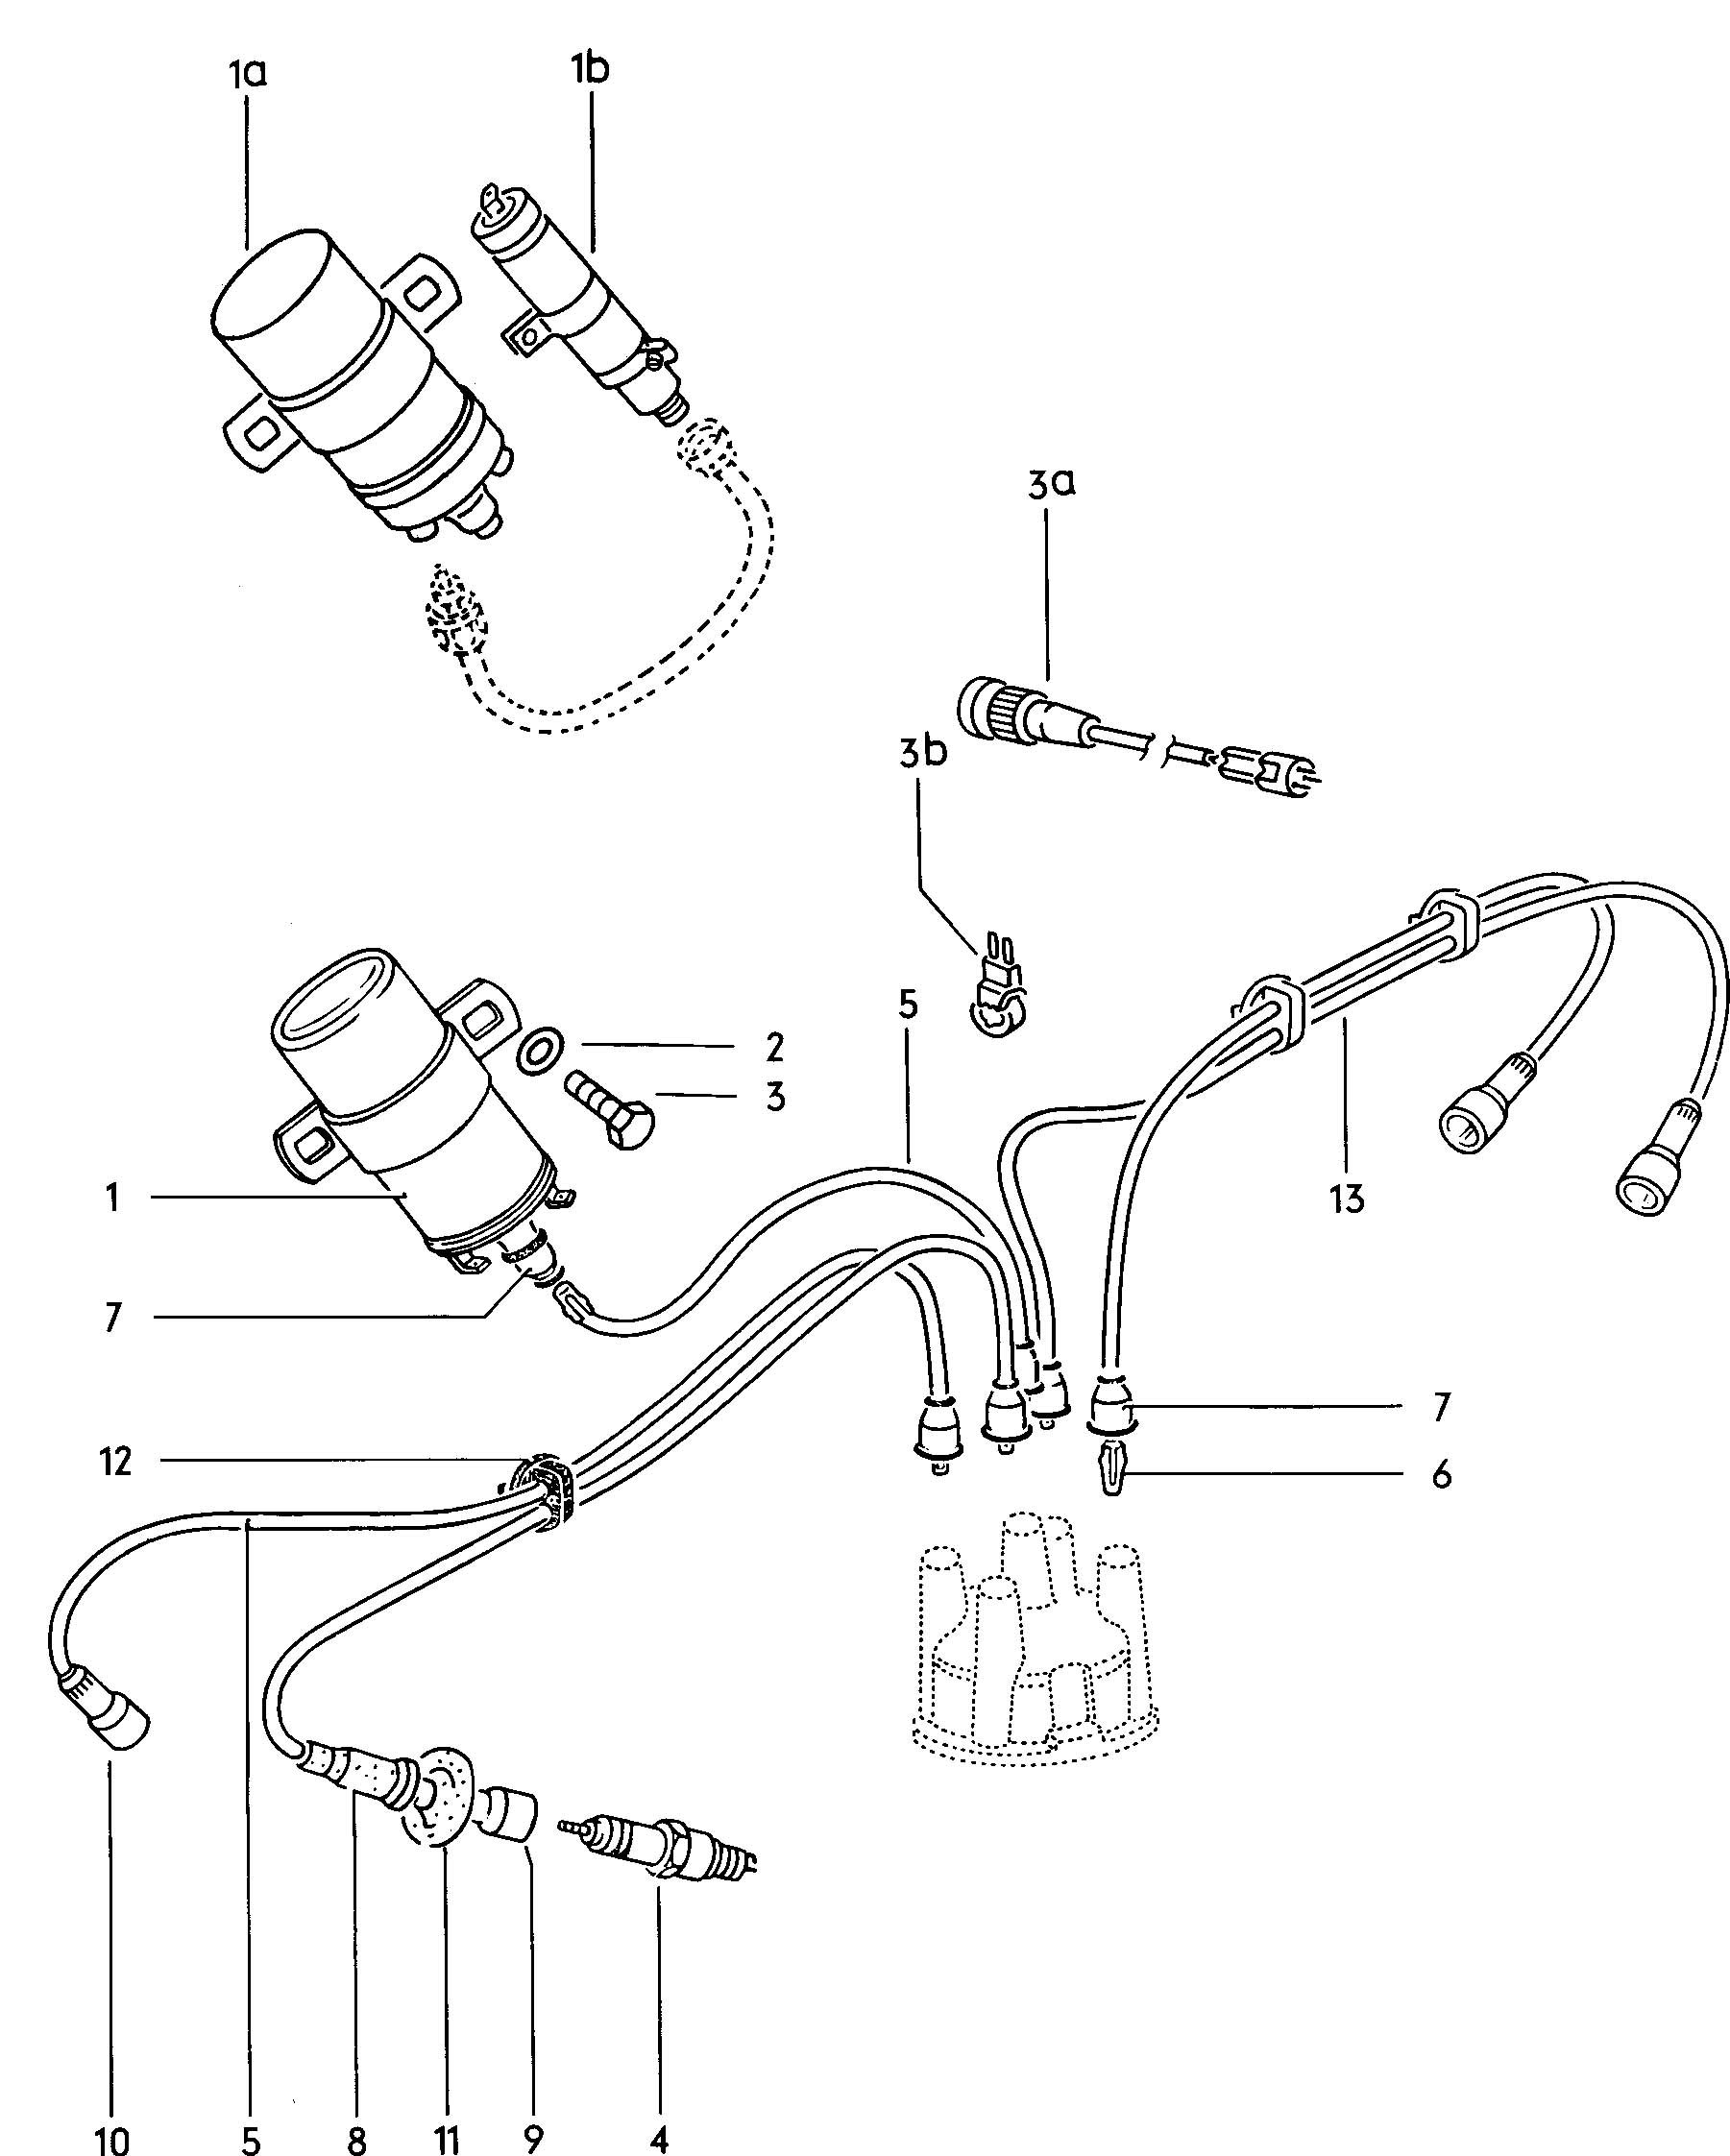 1974 Vw Beetle Alternator Wiring Diagram. Diagram. Wiring